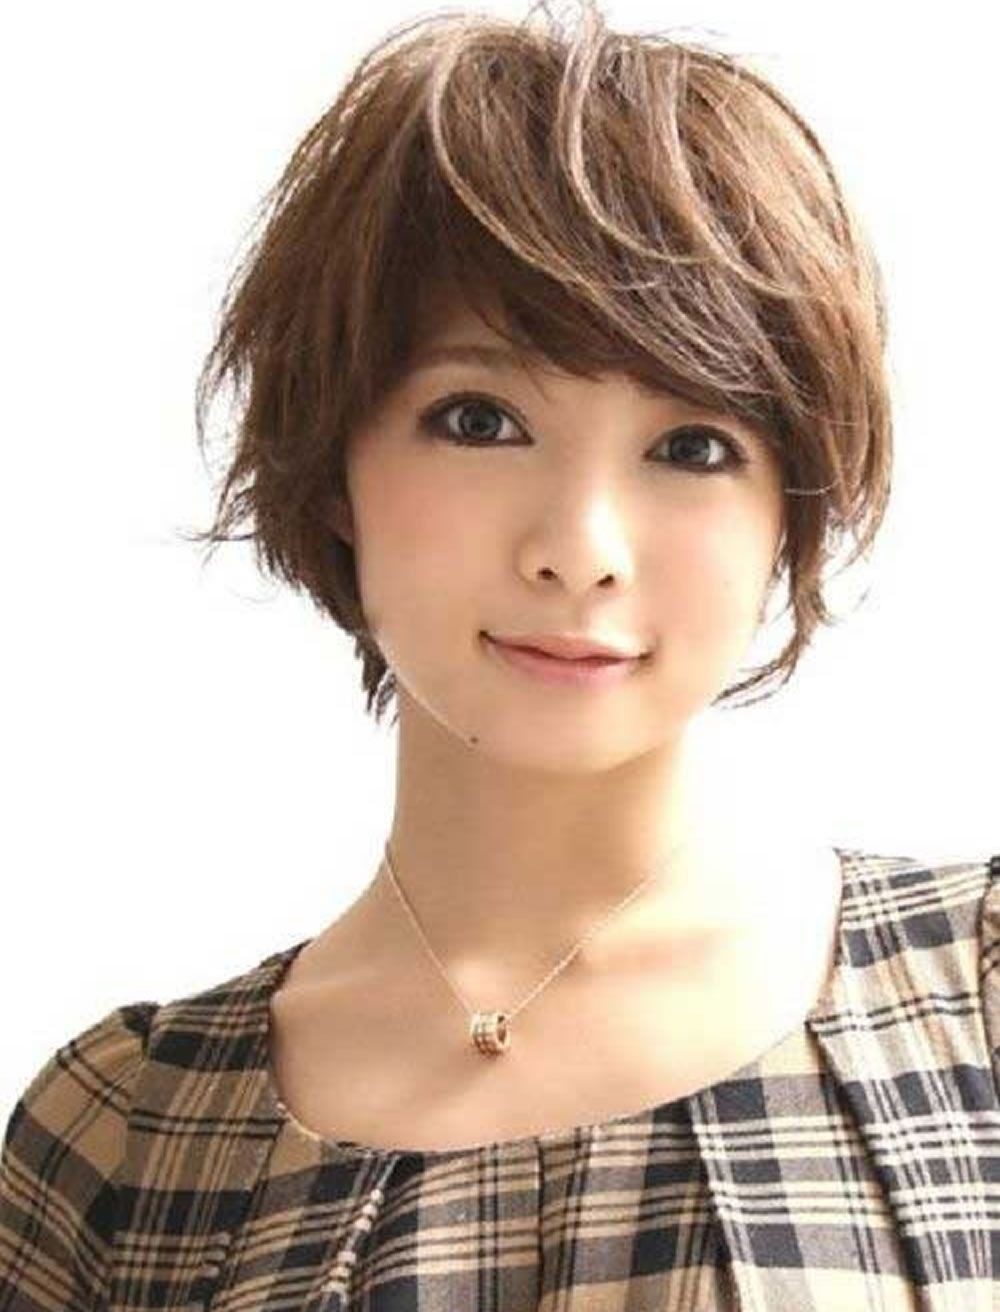 Glorious short hairstyles for Asian women for summer days ...